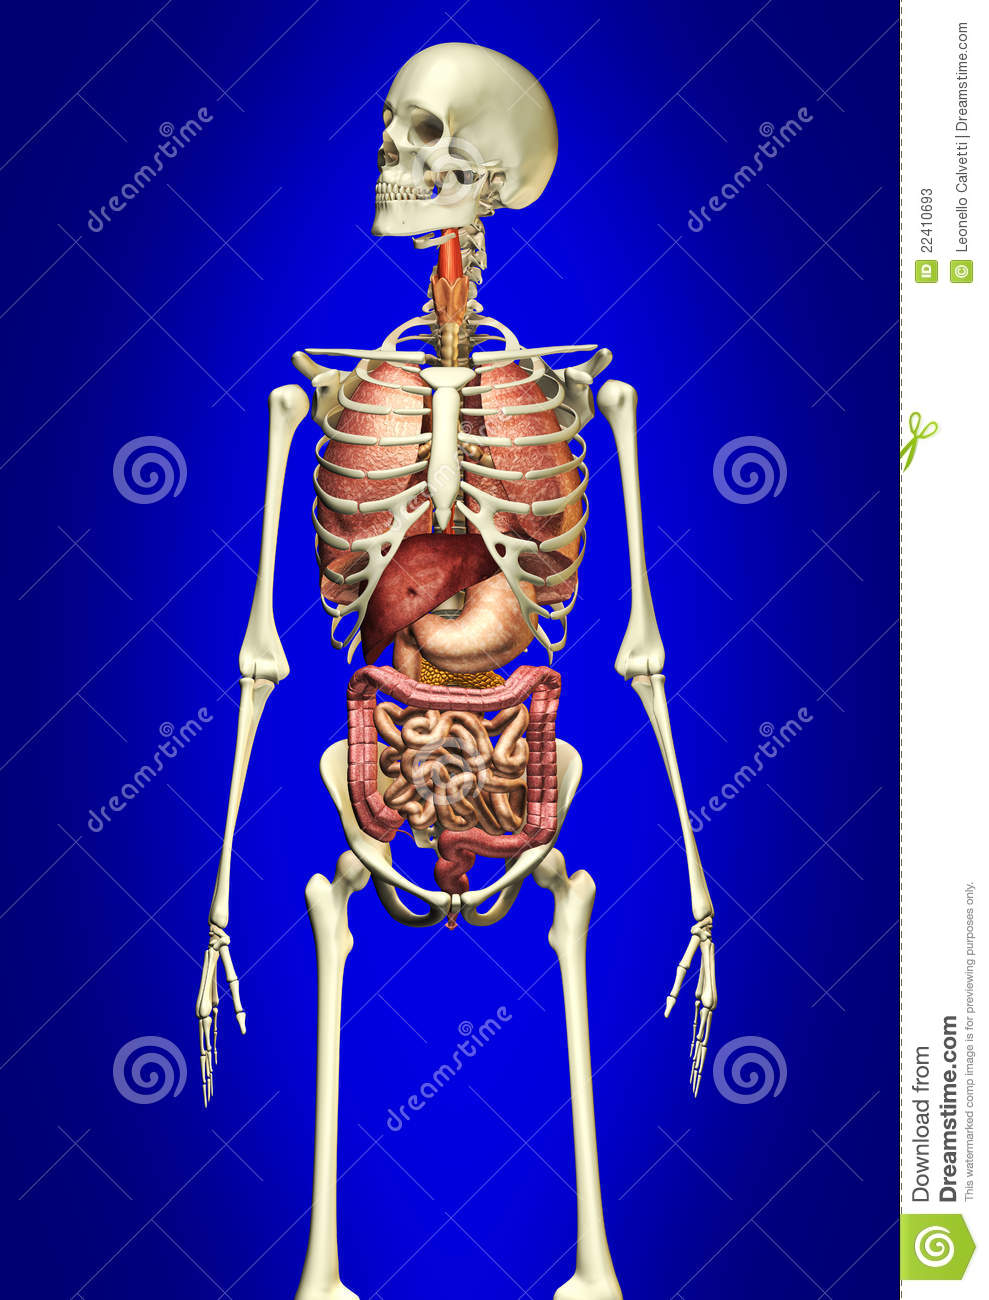 man skeleton with internal organs stock photos - image: 22410693, Skeleton